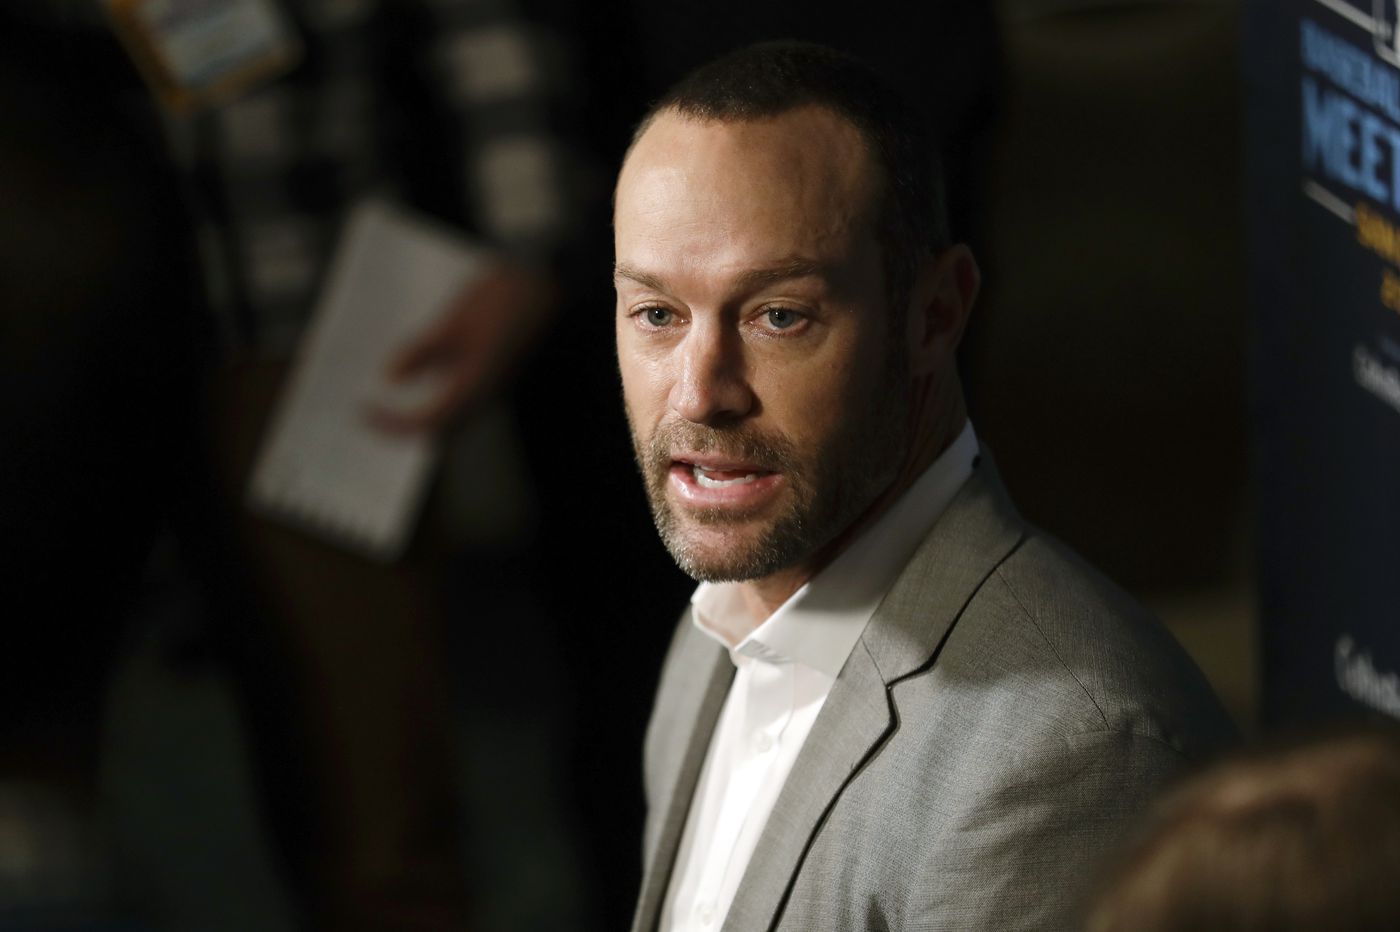 Gabe Kapler: 'Difficult' ending to managerial tenure with Phillies